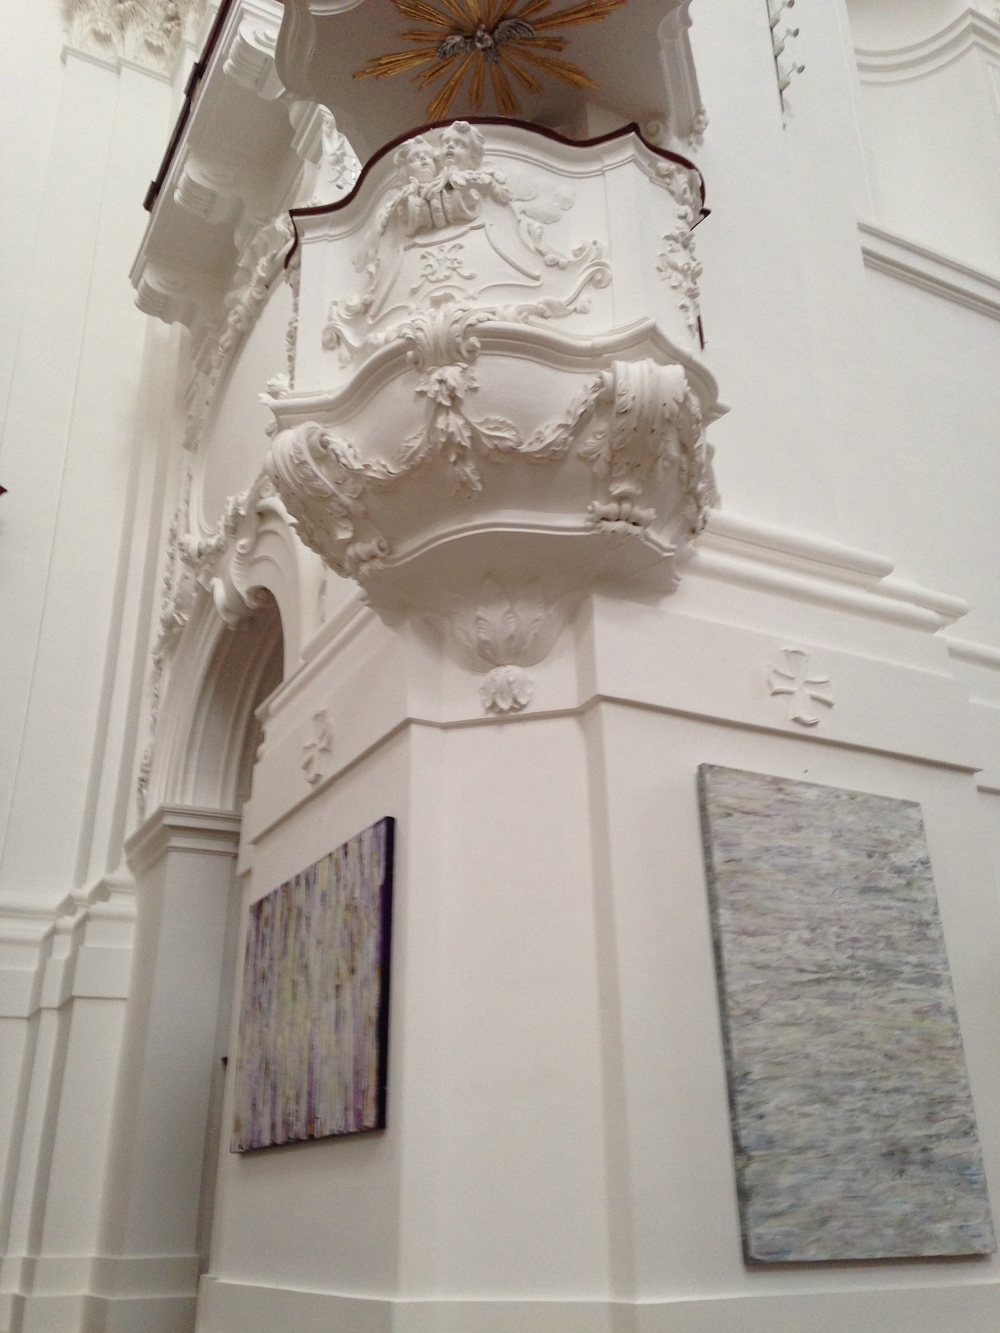 Two of Susan's more subdued paintings,  A Personal Path 2  (left) and  Quiet Interlude  (right) are displayed beneath a dramatic example of Baroque architecture.